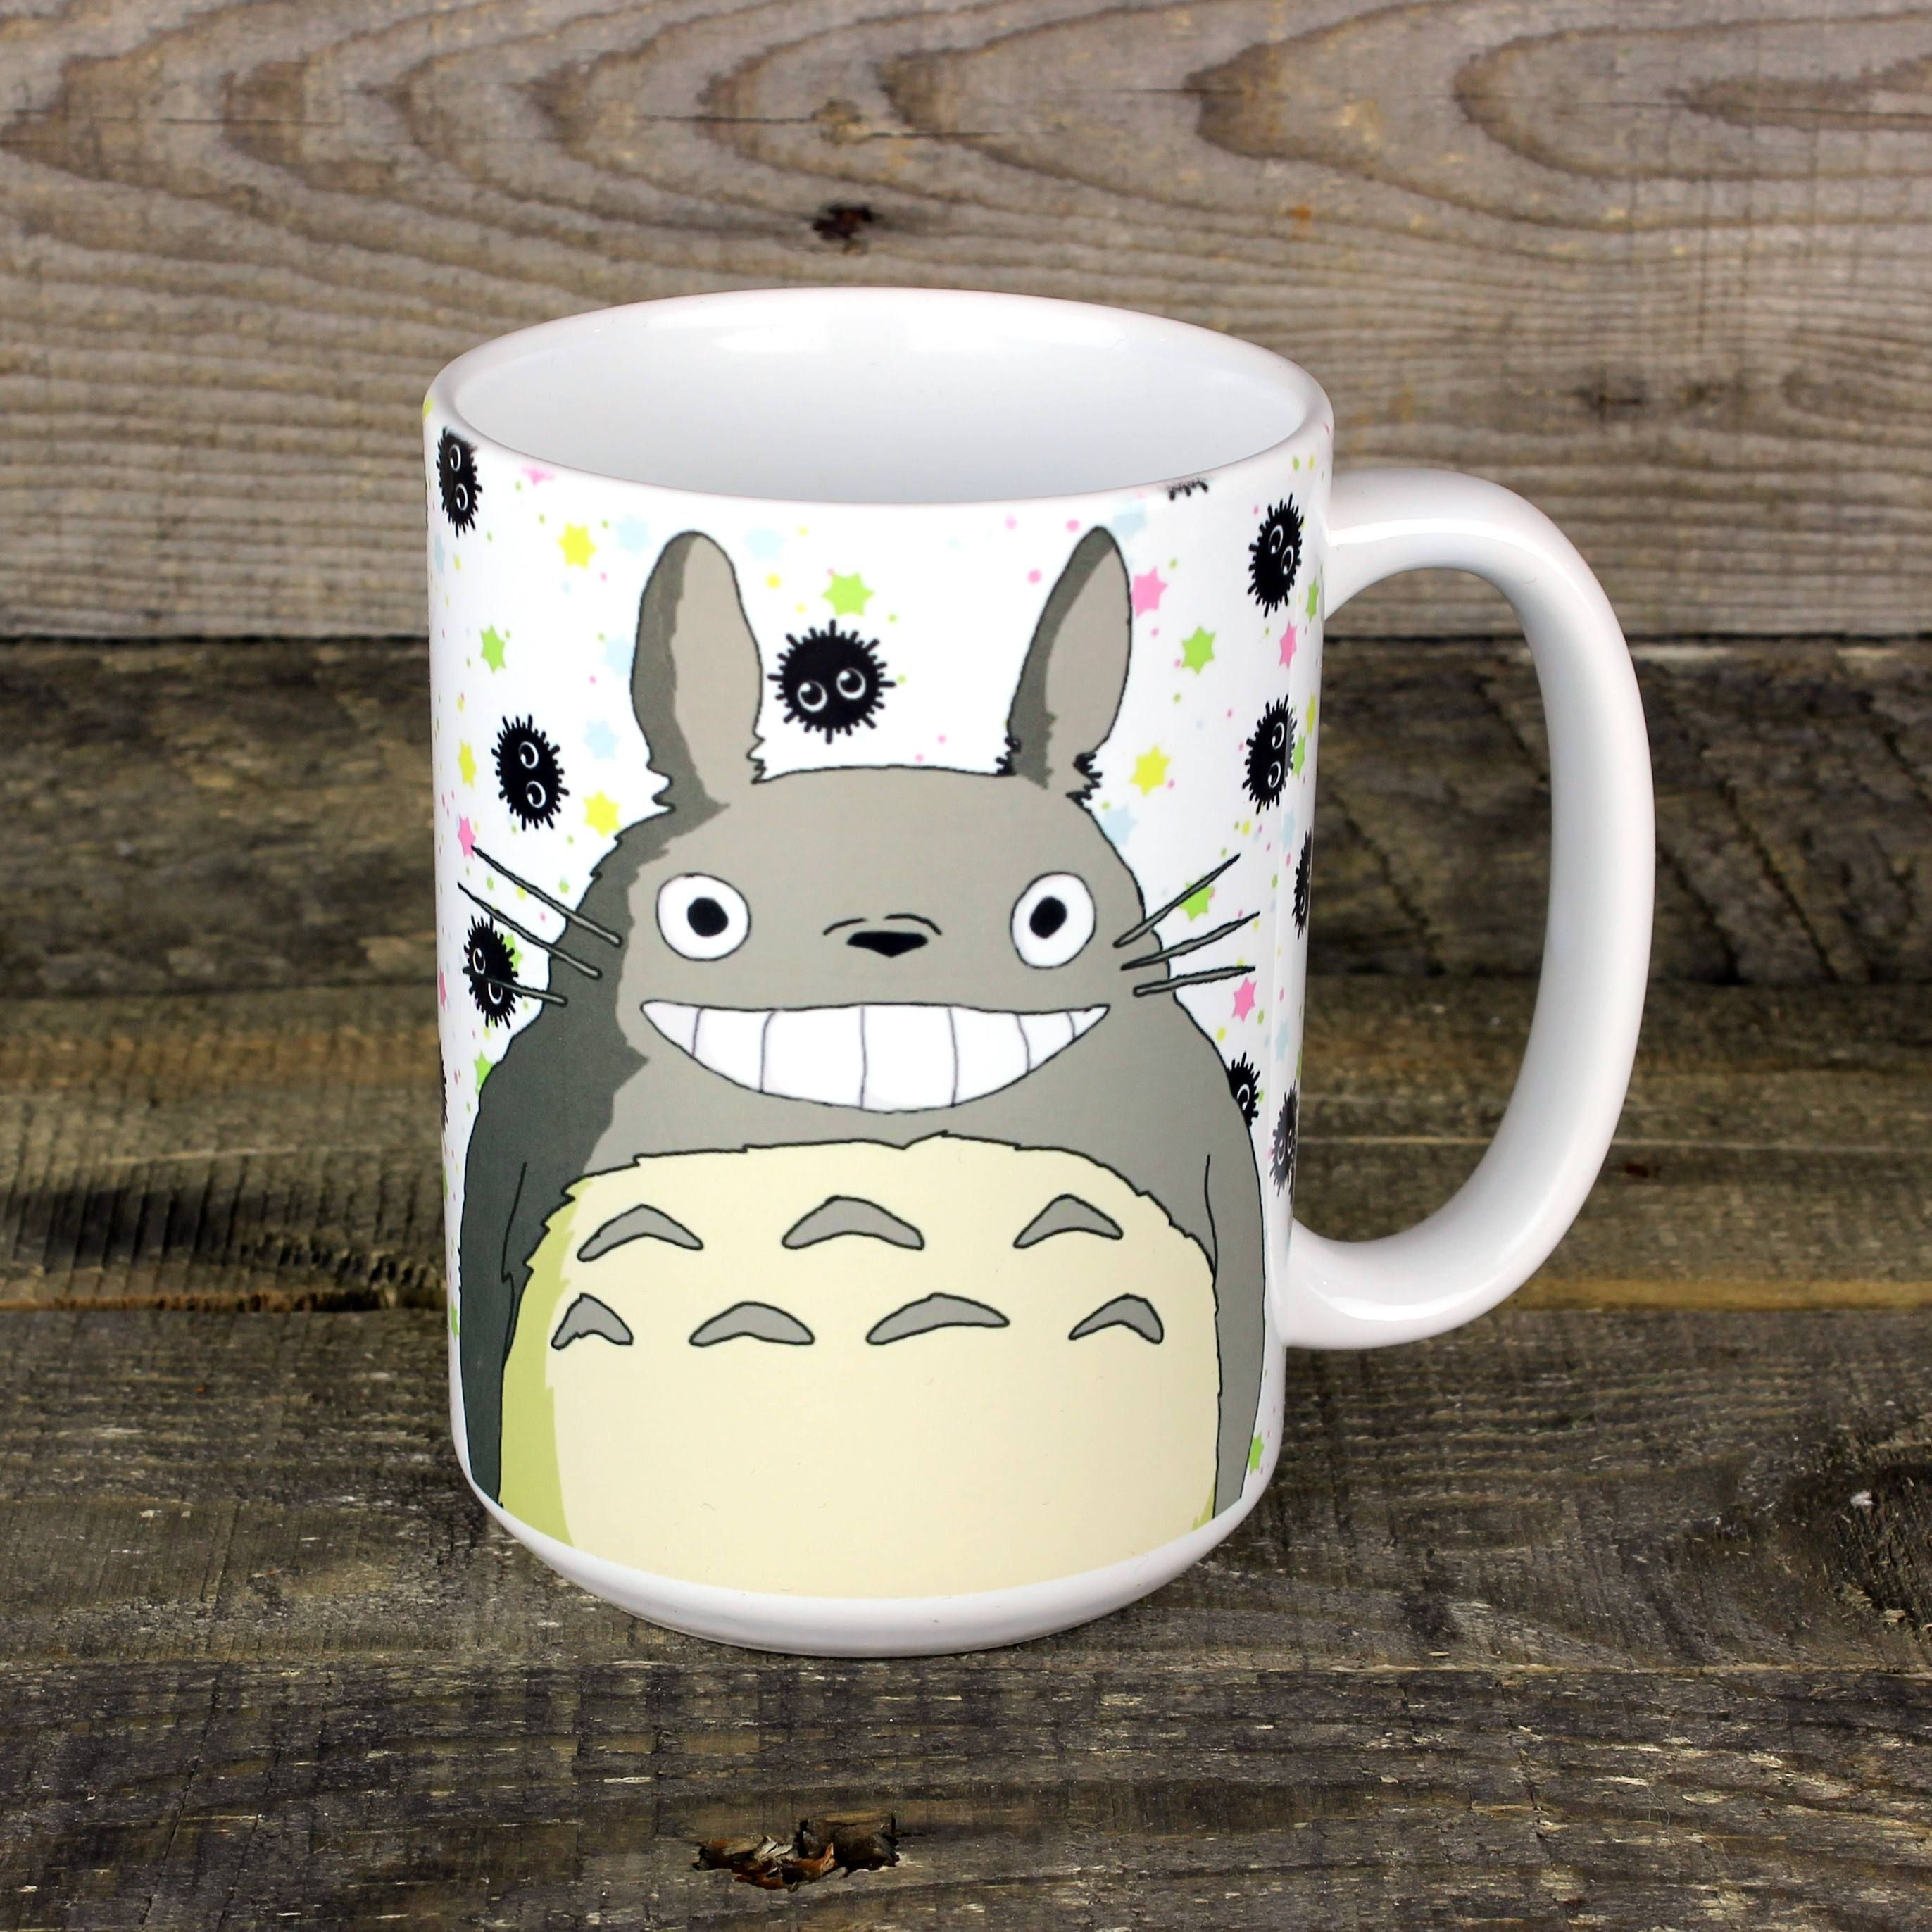 15 oz mug featuring the ever adorable Totoro. Microwave safe. You can run it baff66f5e6